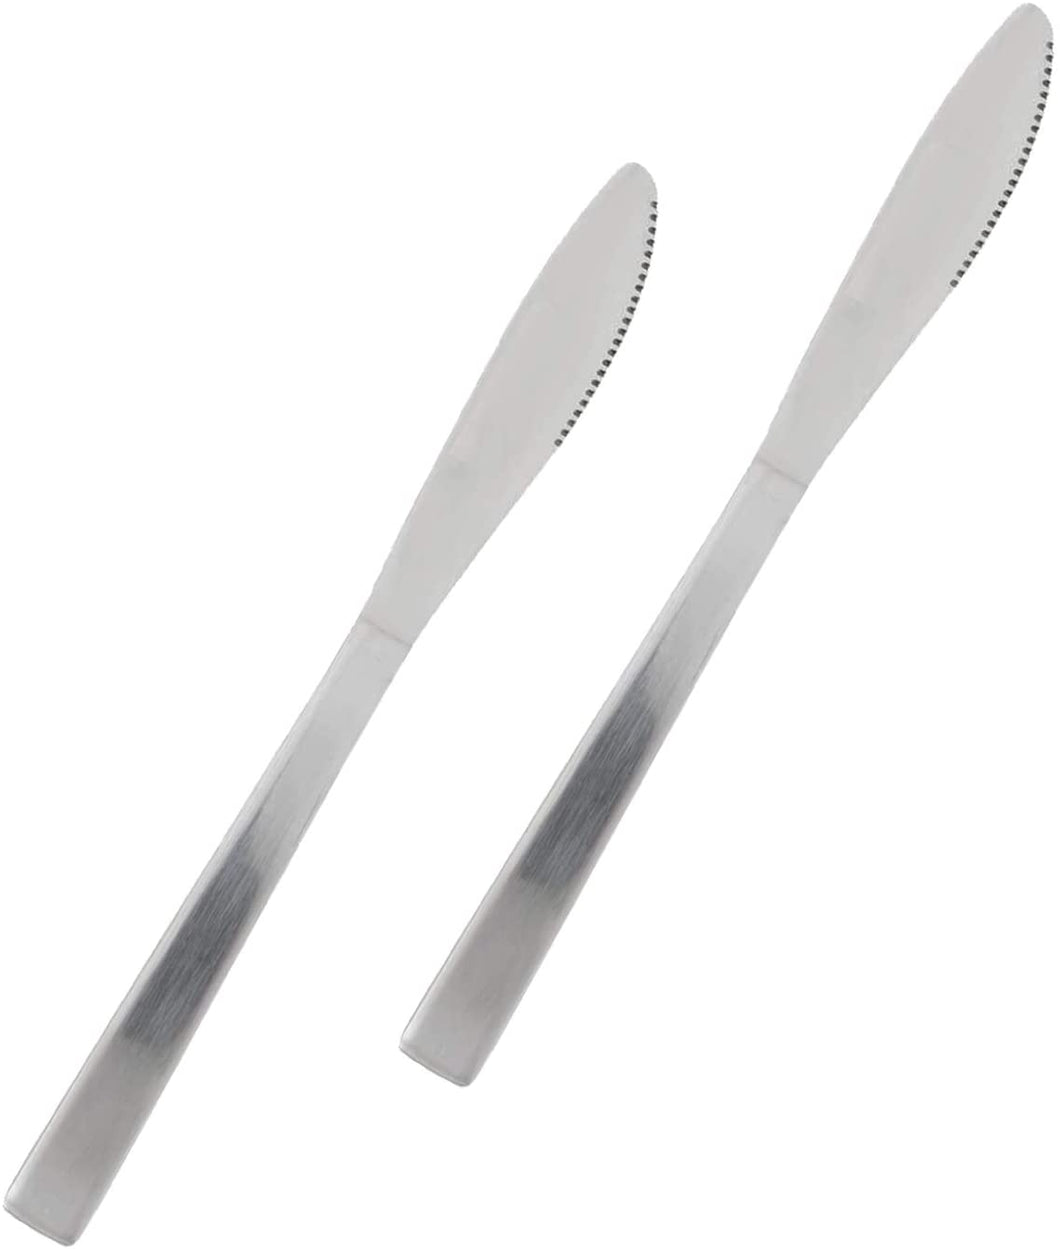 Stainless Steel Heavy Weight Polished Dinner Knife 'Esquire' (2 PC)